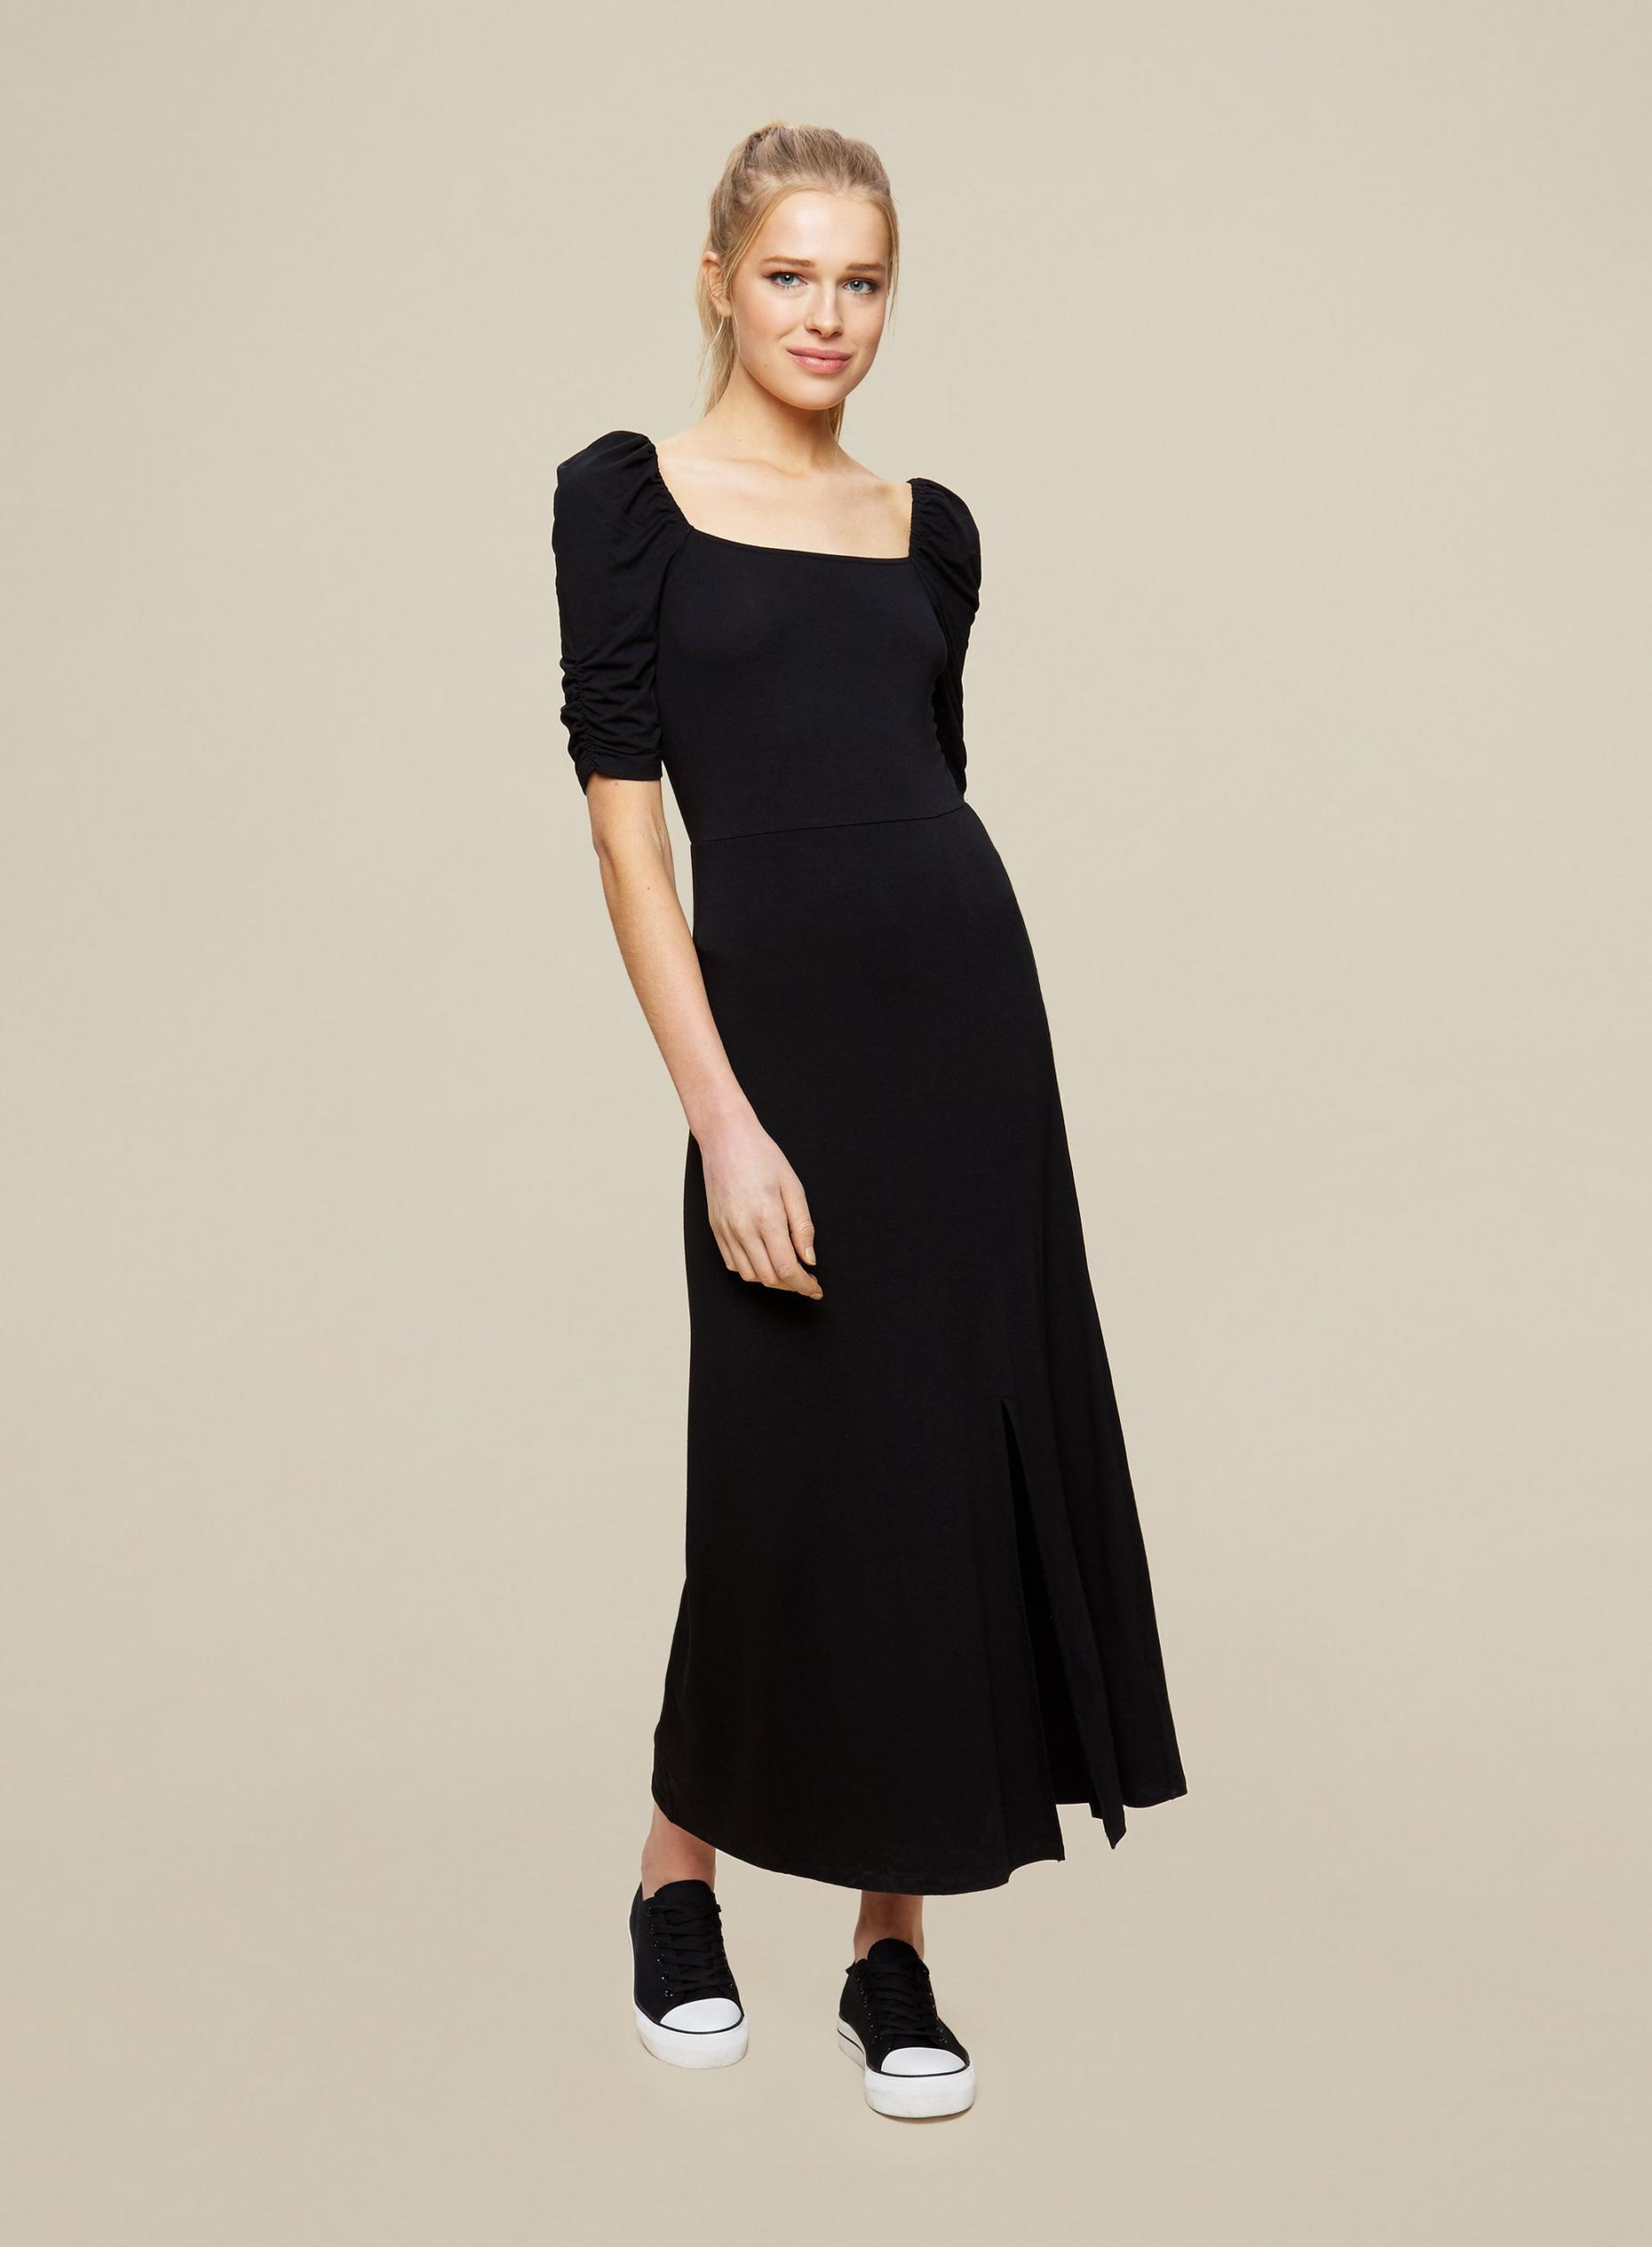 Black Ruched Sleeve Midi Dress